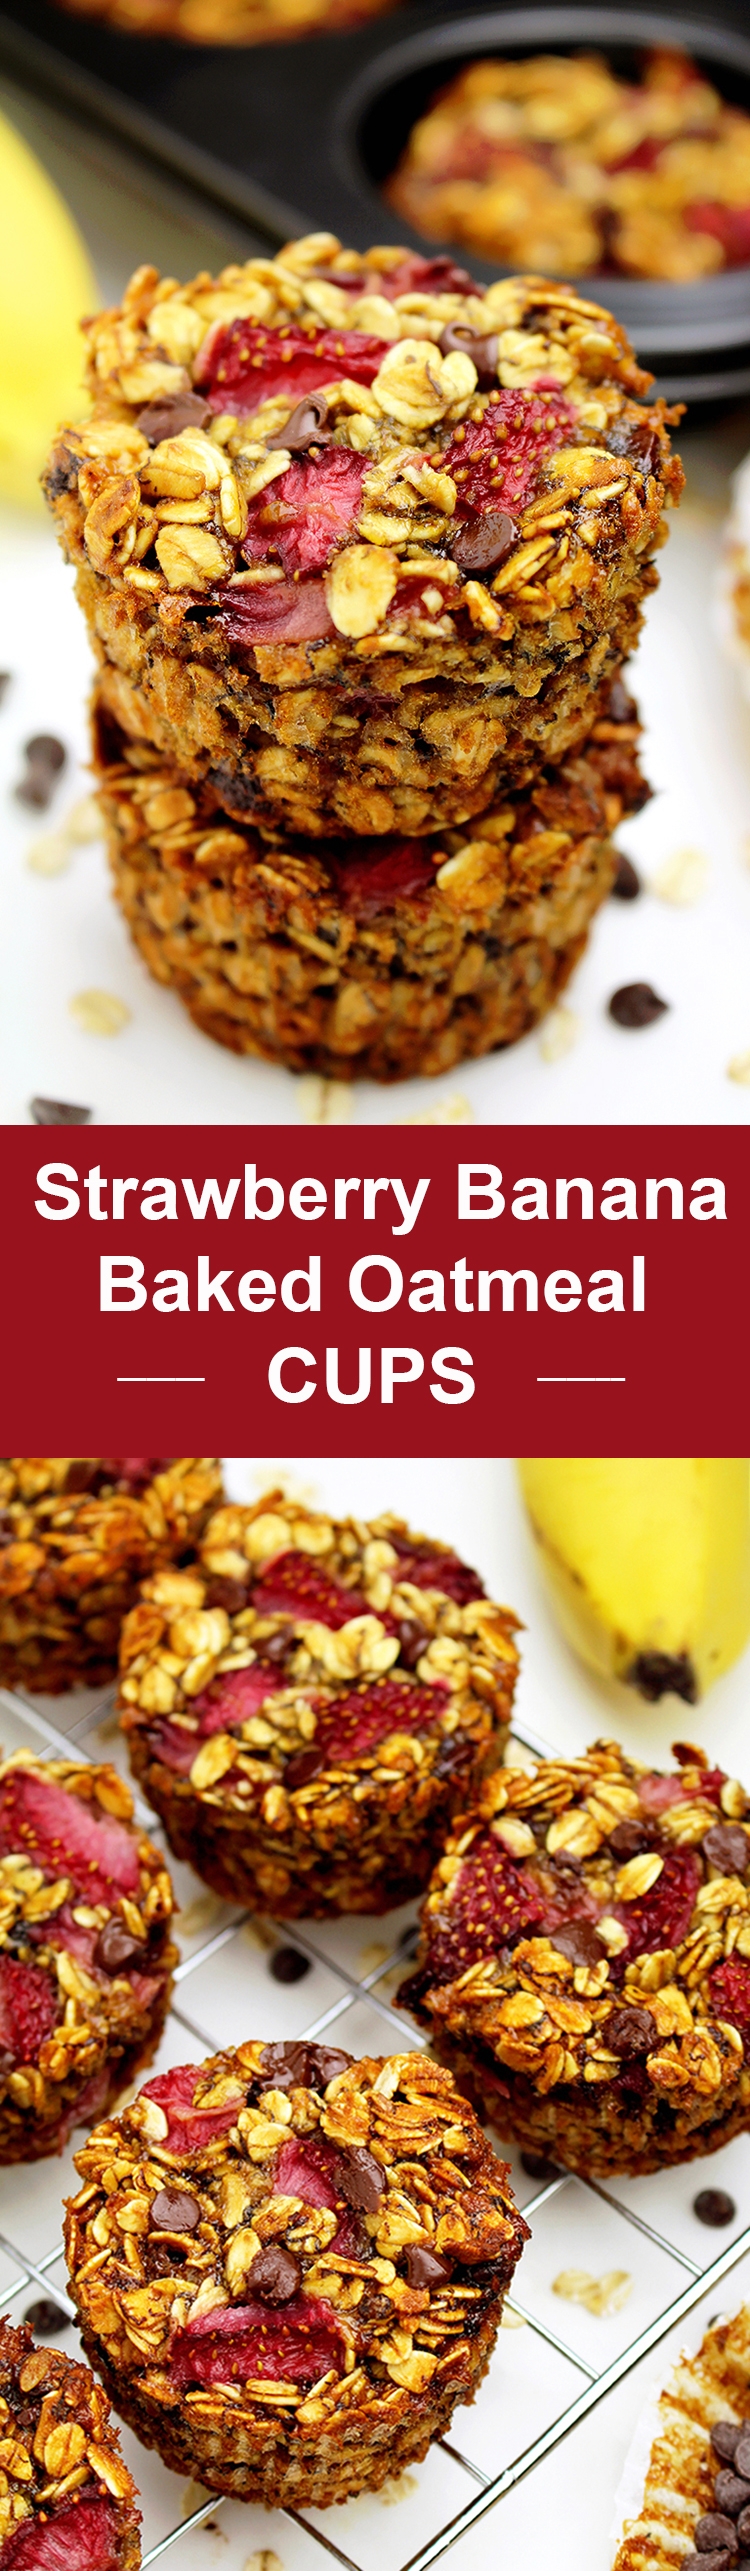 Strawberry Banana Baked Oatmeal Cups